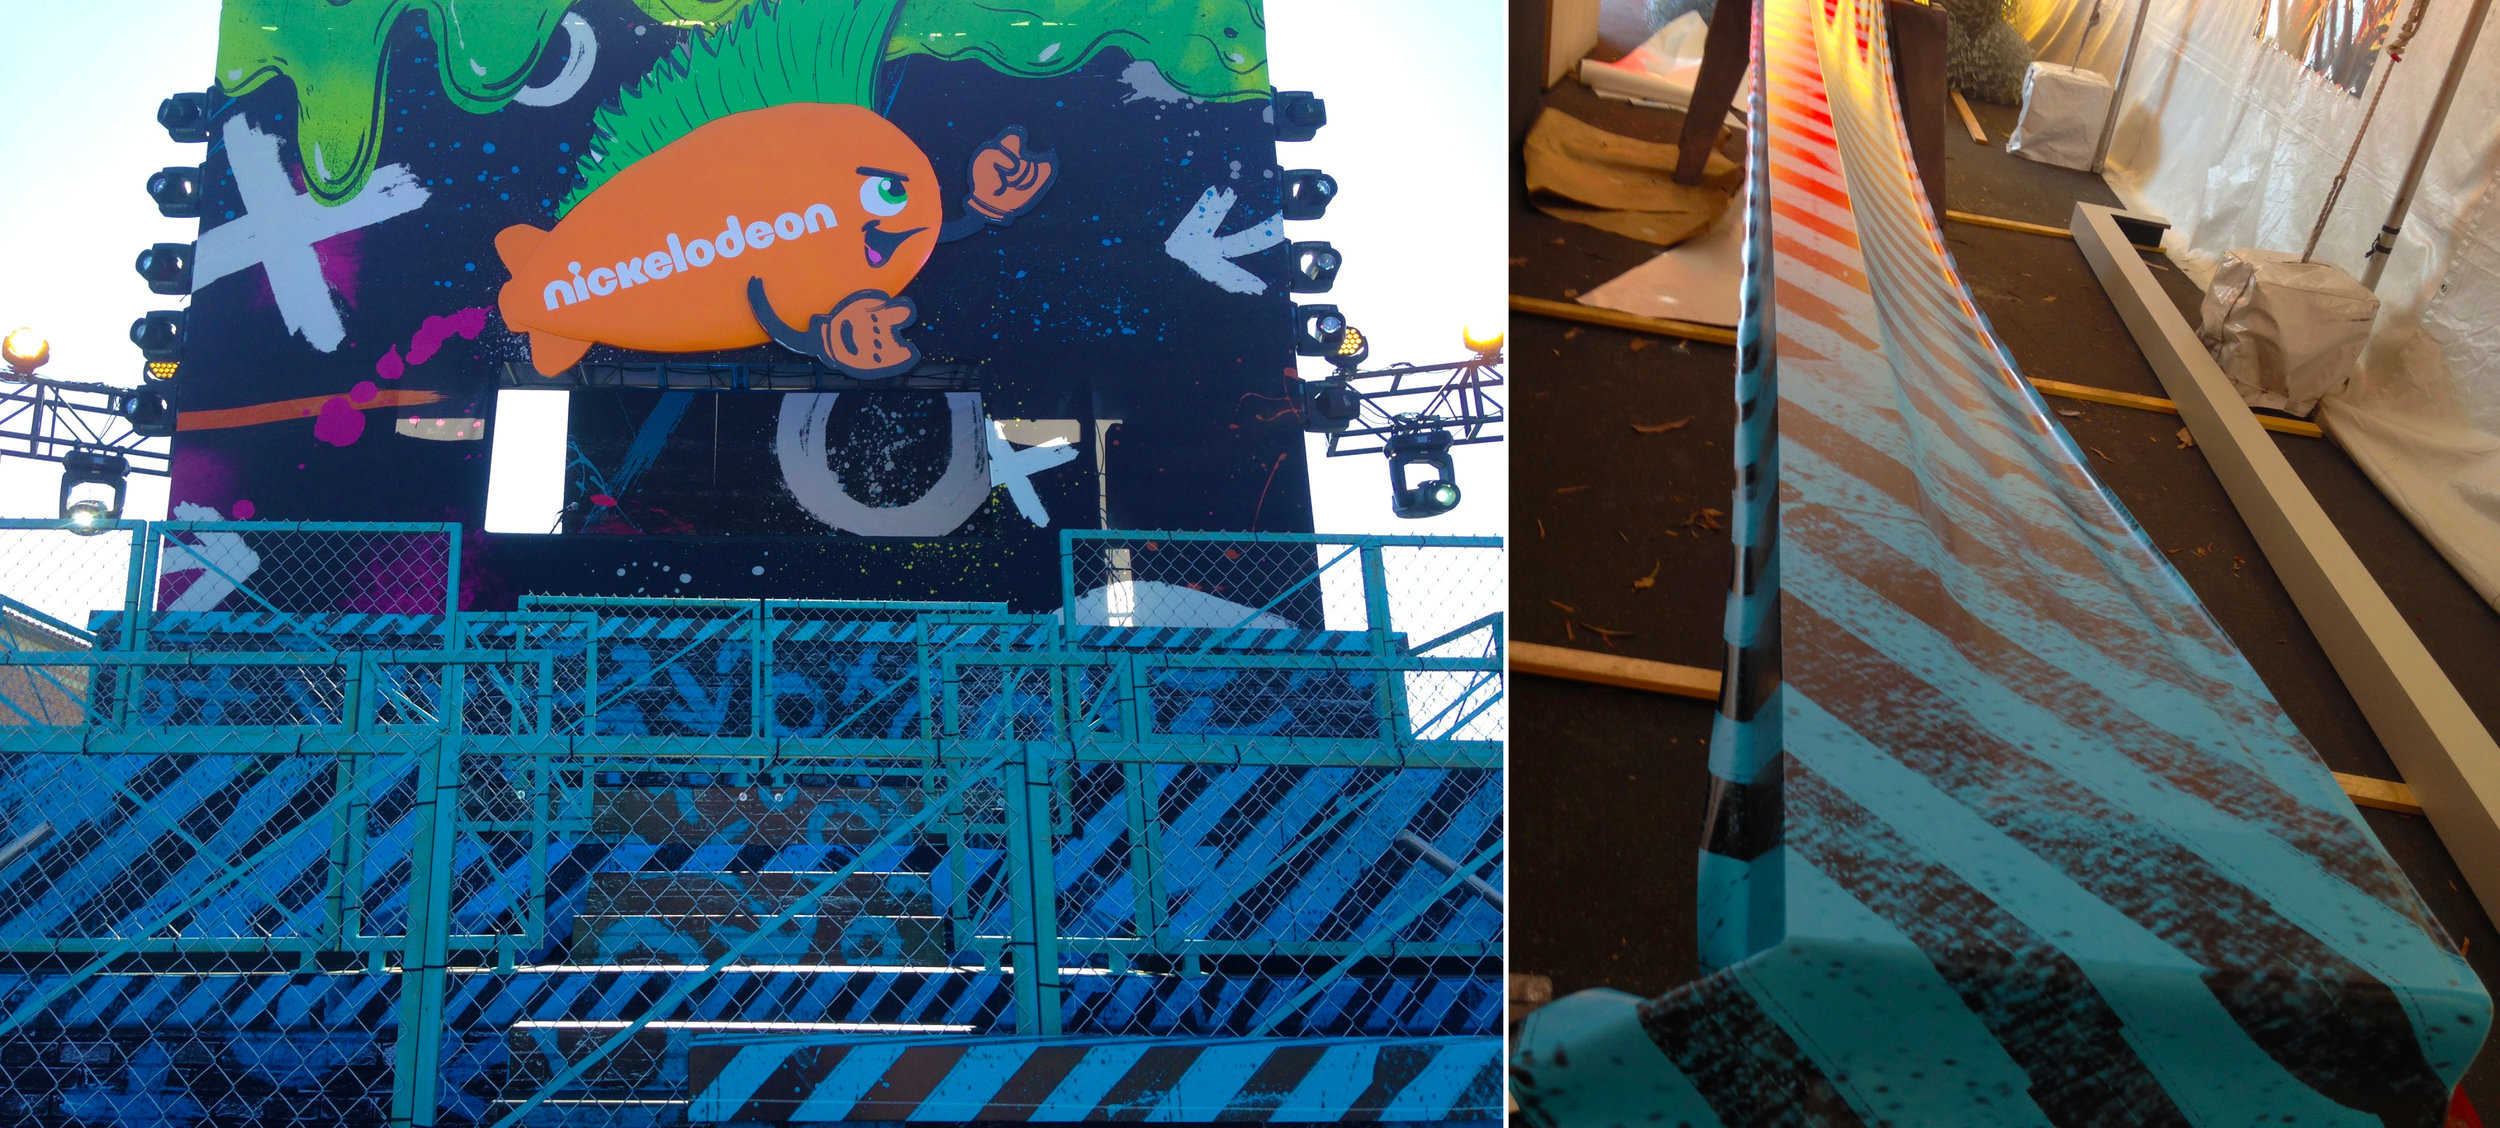 Nickelodeon_Sports Awards Stage.jpg